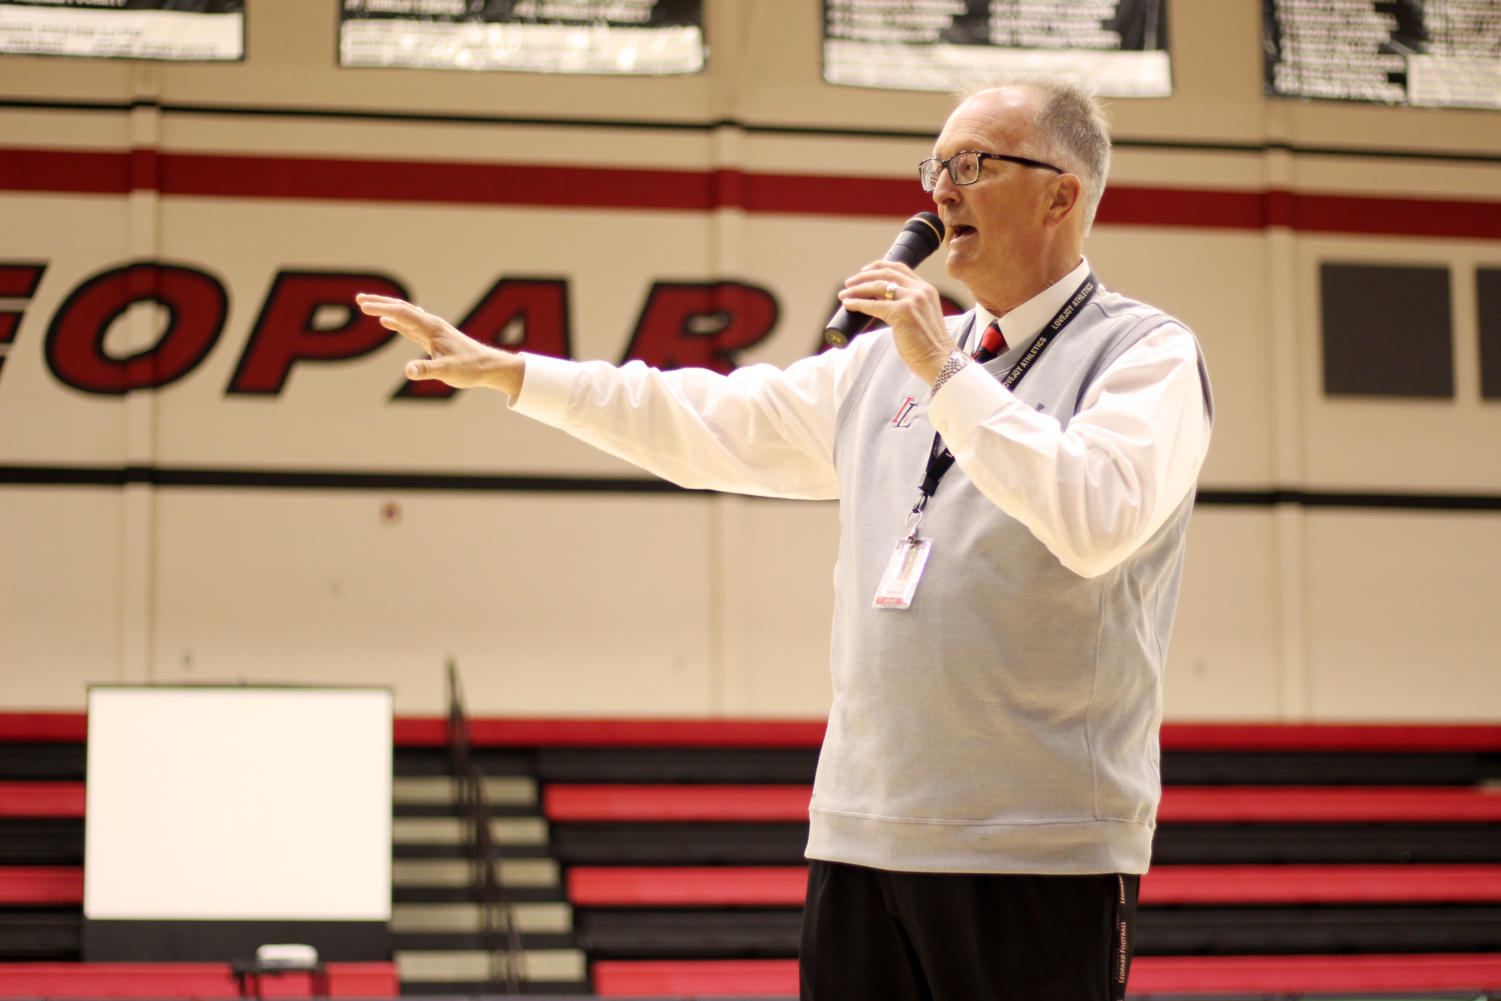 +Lovejoy+athletics+director+Jim+Bob+Puckett+introduces+the+event+and+athletes+at+the+beginning+of+signing+day.+He+also+introduced+each+individual+athlete+between+their+coaches+talking+about+them.%0A